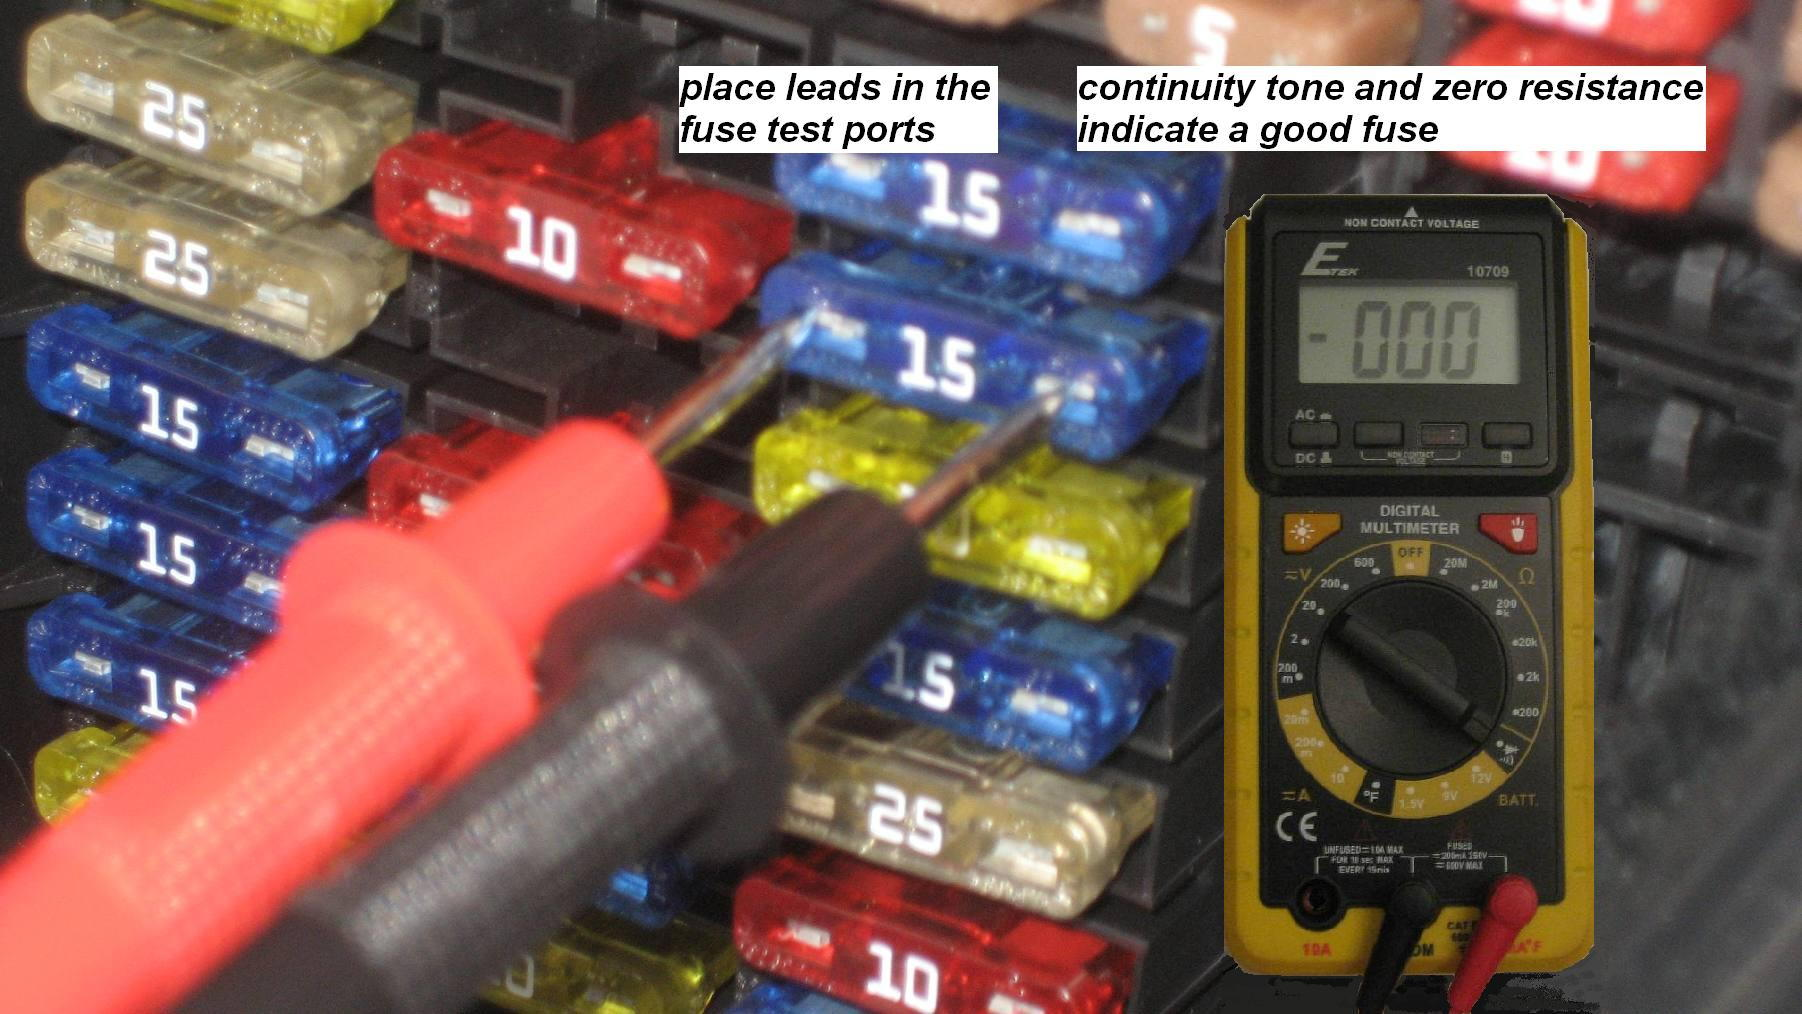 How To Check Fuse Box In Car : Testing fuses in box wiring diagram images